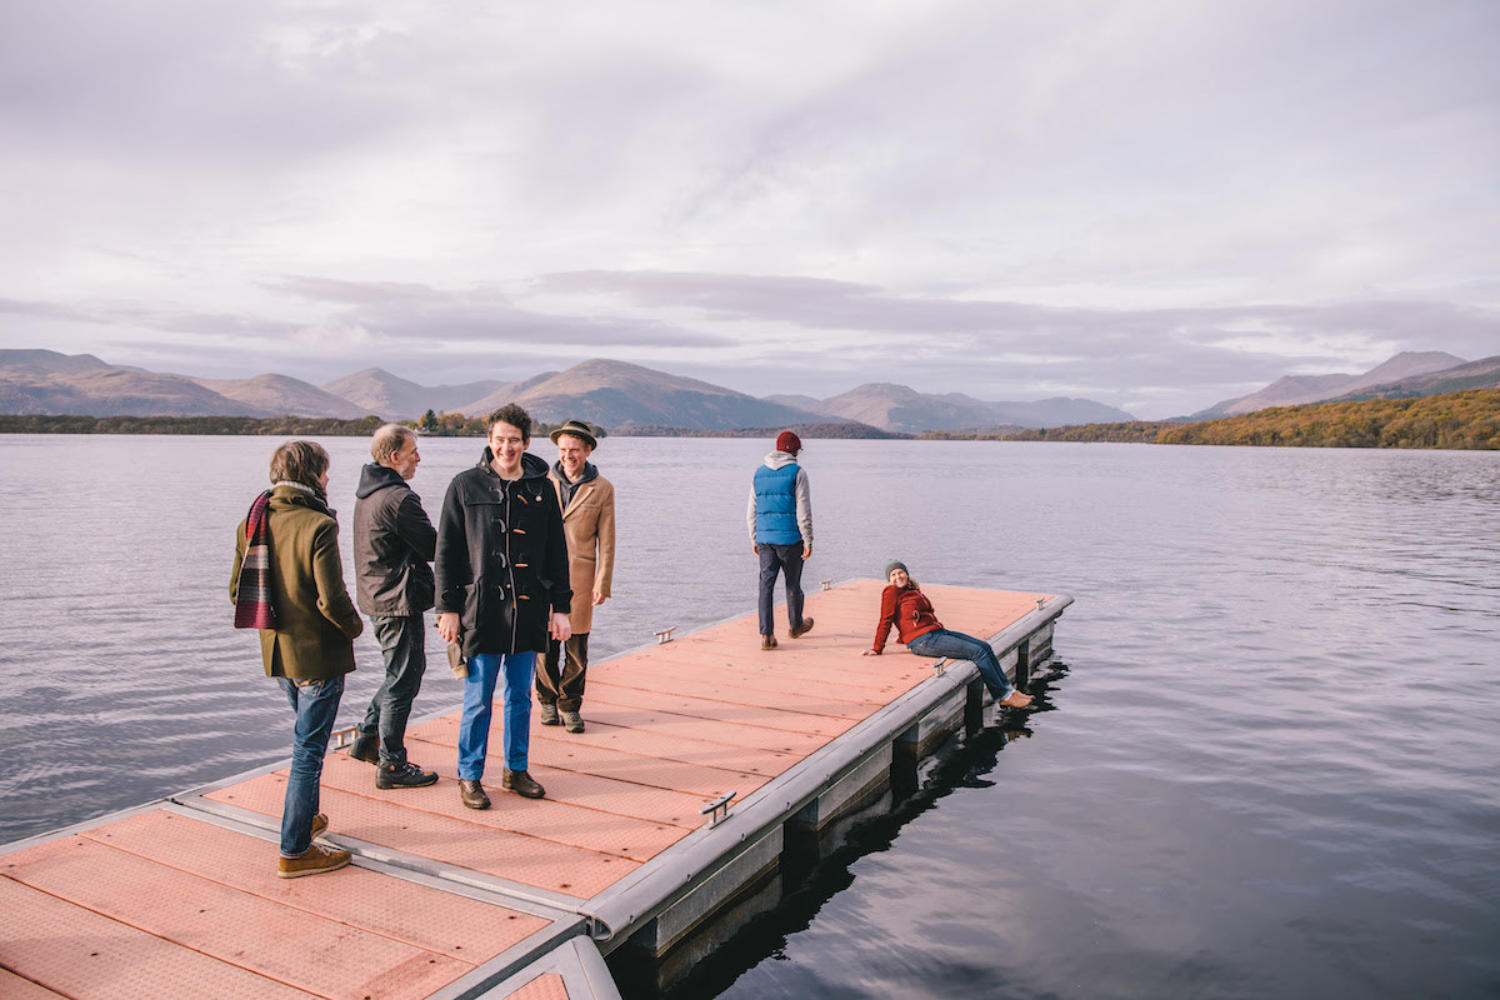 Belle & Sebastian announce Boaty Weekender Cruise Lineup with Mogwai, Camera Obscura, Django Django, Alvvays and more